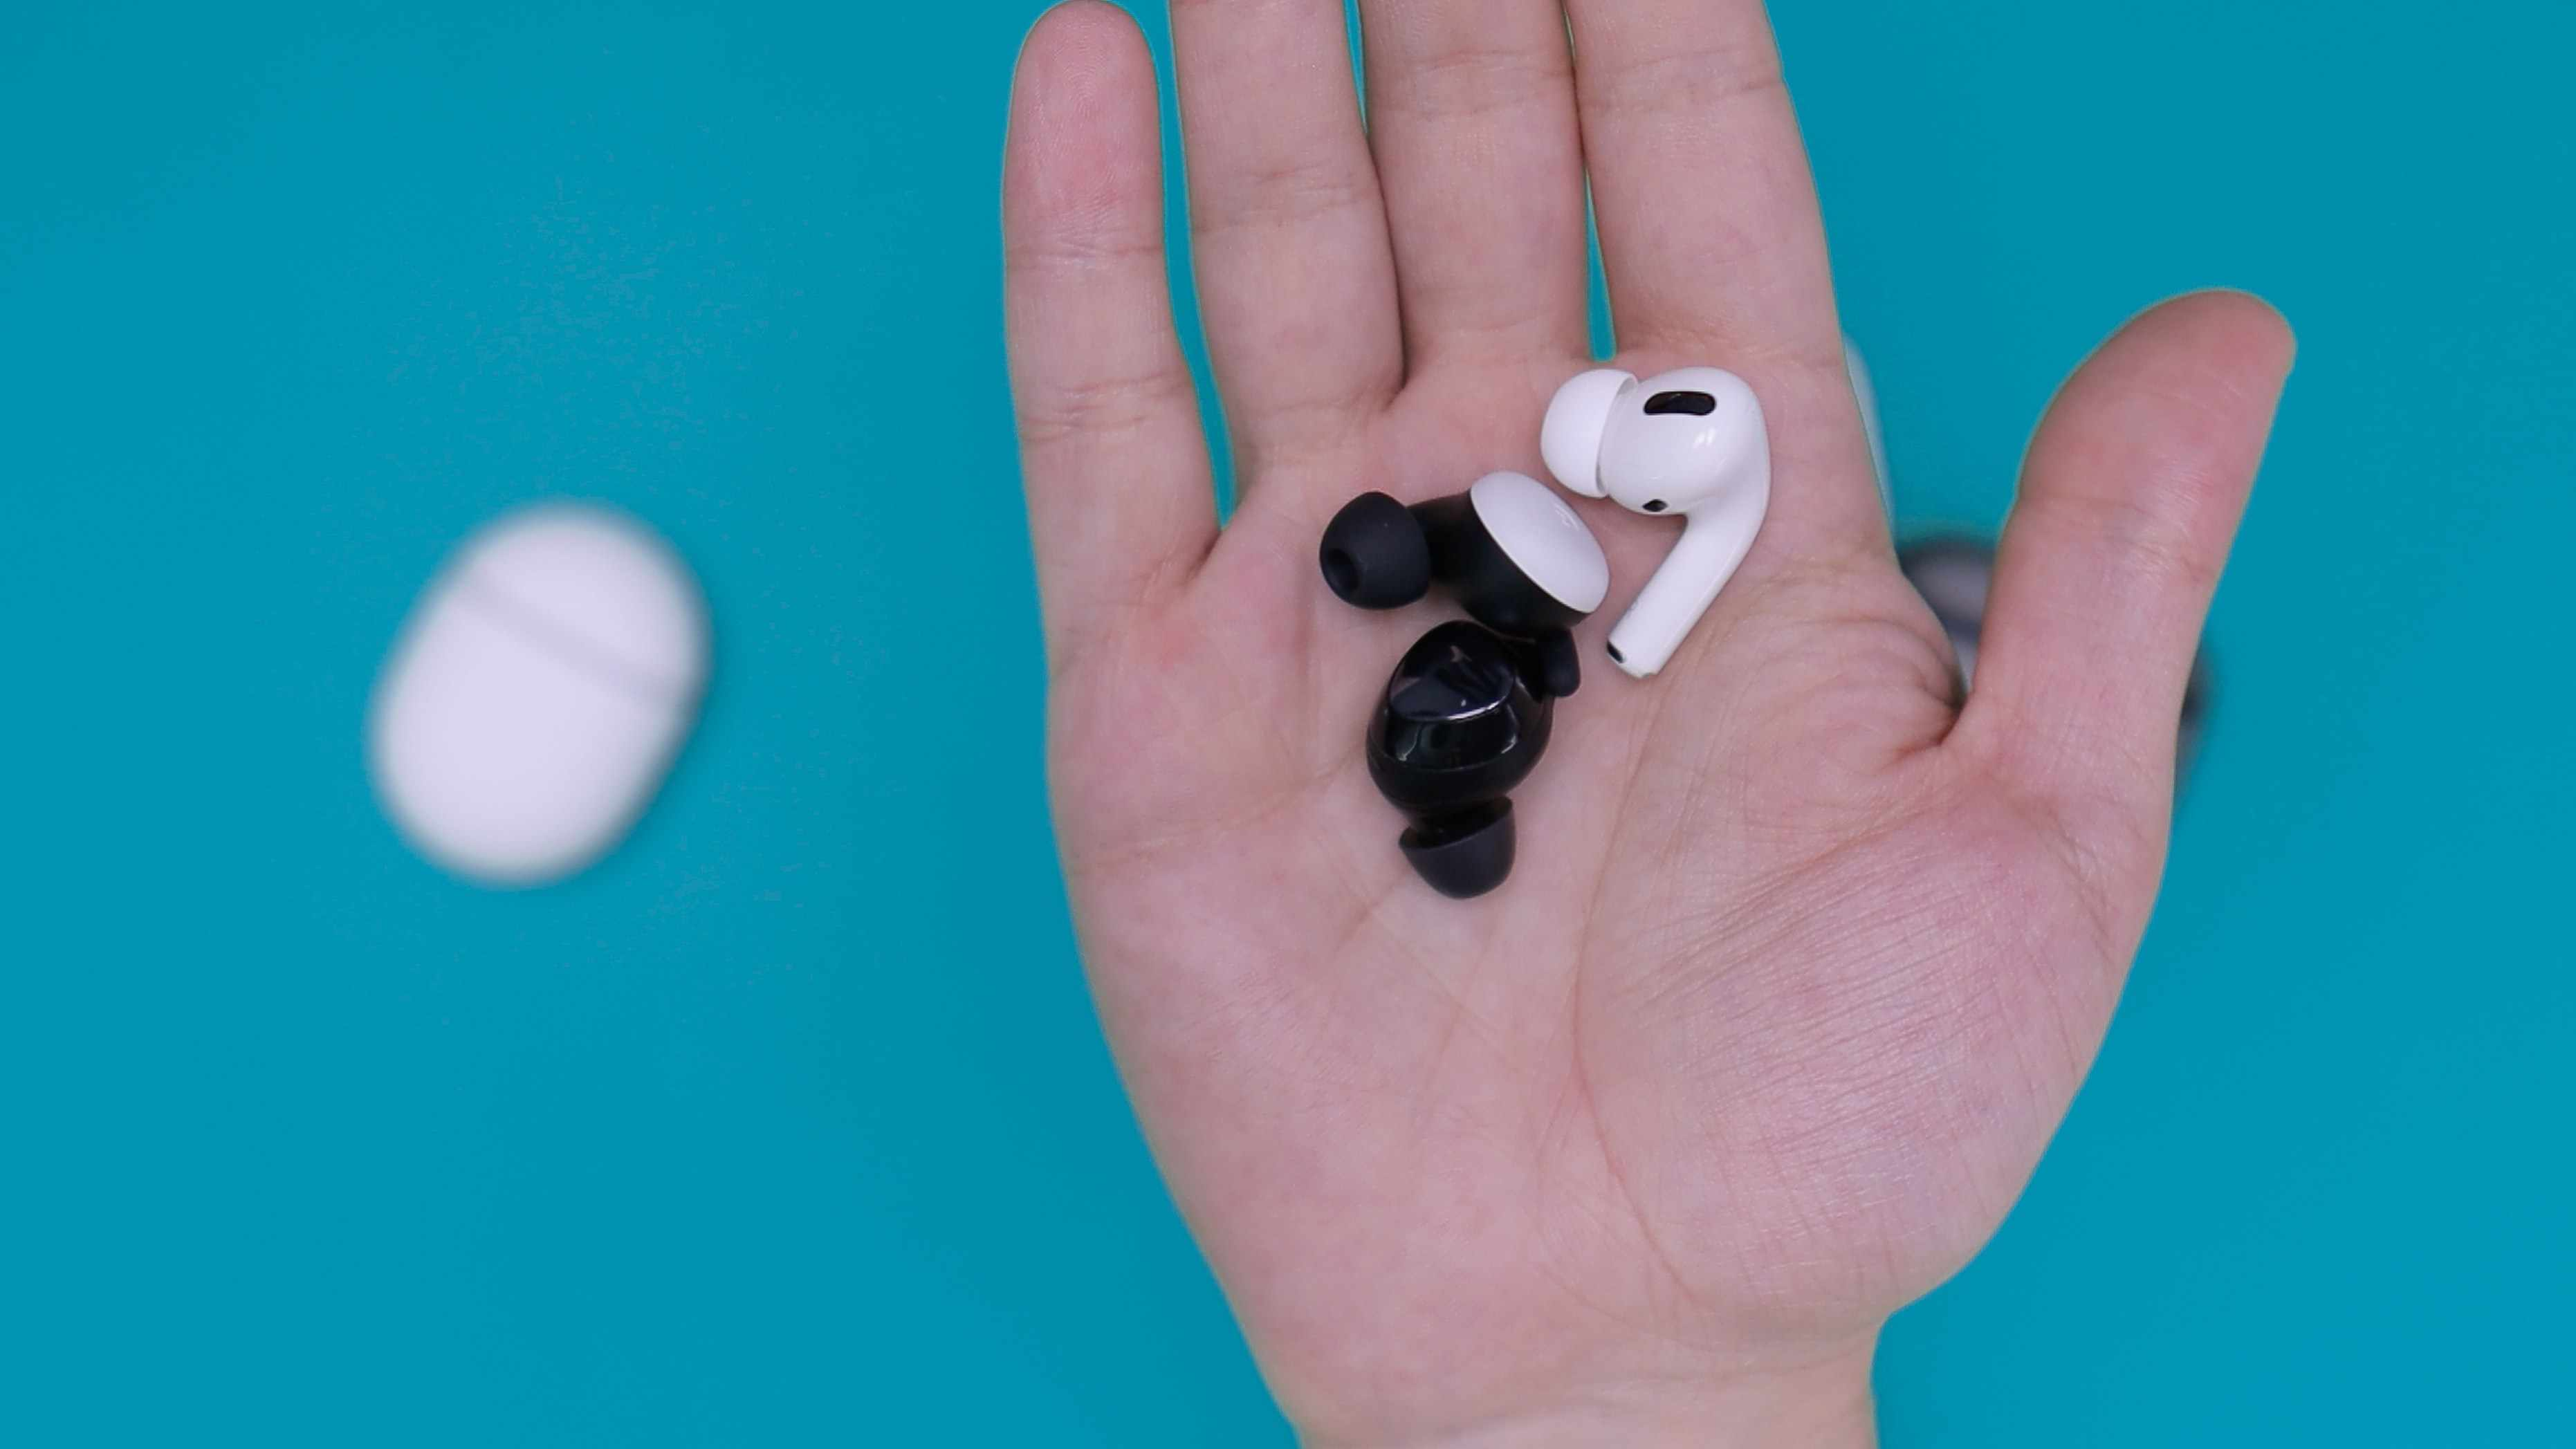 Closeup of someone holding several earbuds with a case in the background.